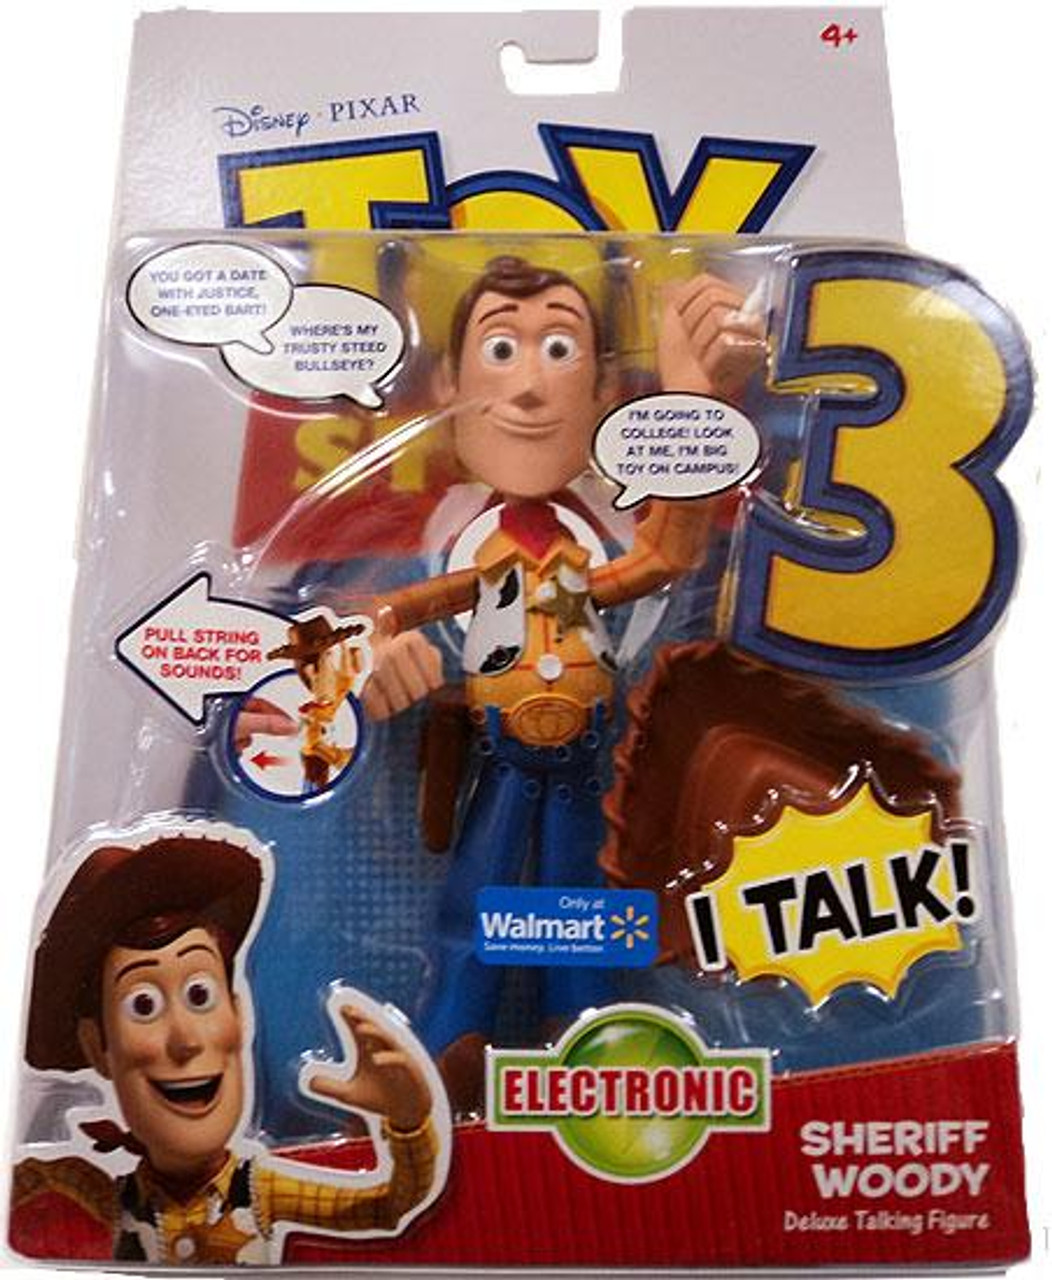 Toy Story 3 Electronic Talking Woody Exclusive Action Figure [Sheriff]